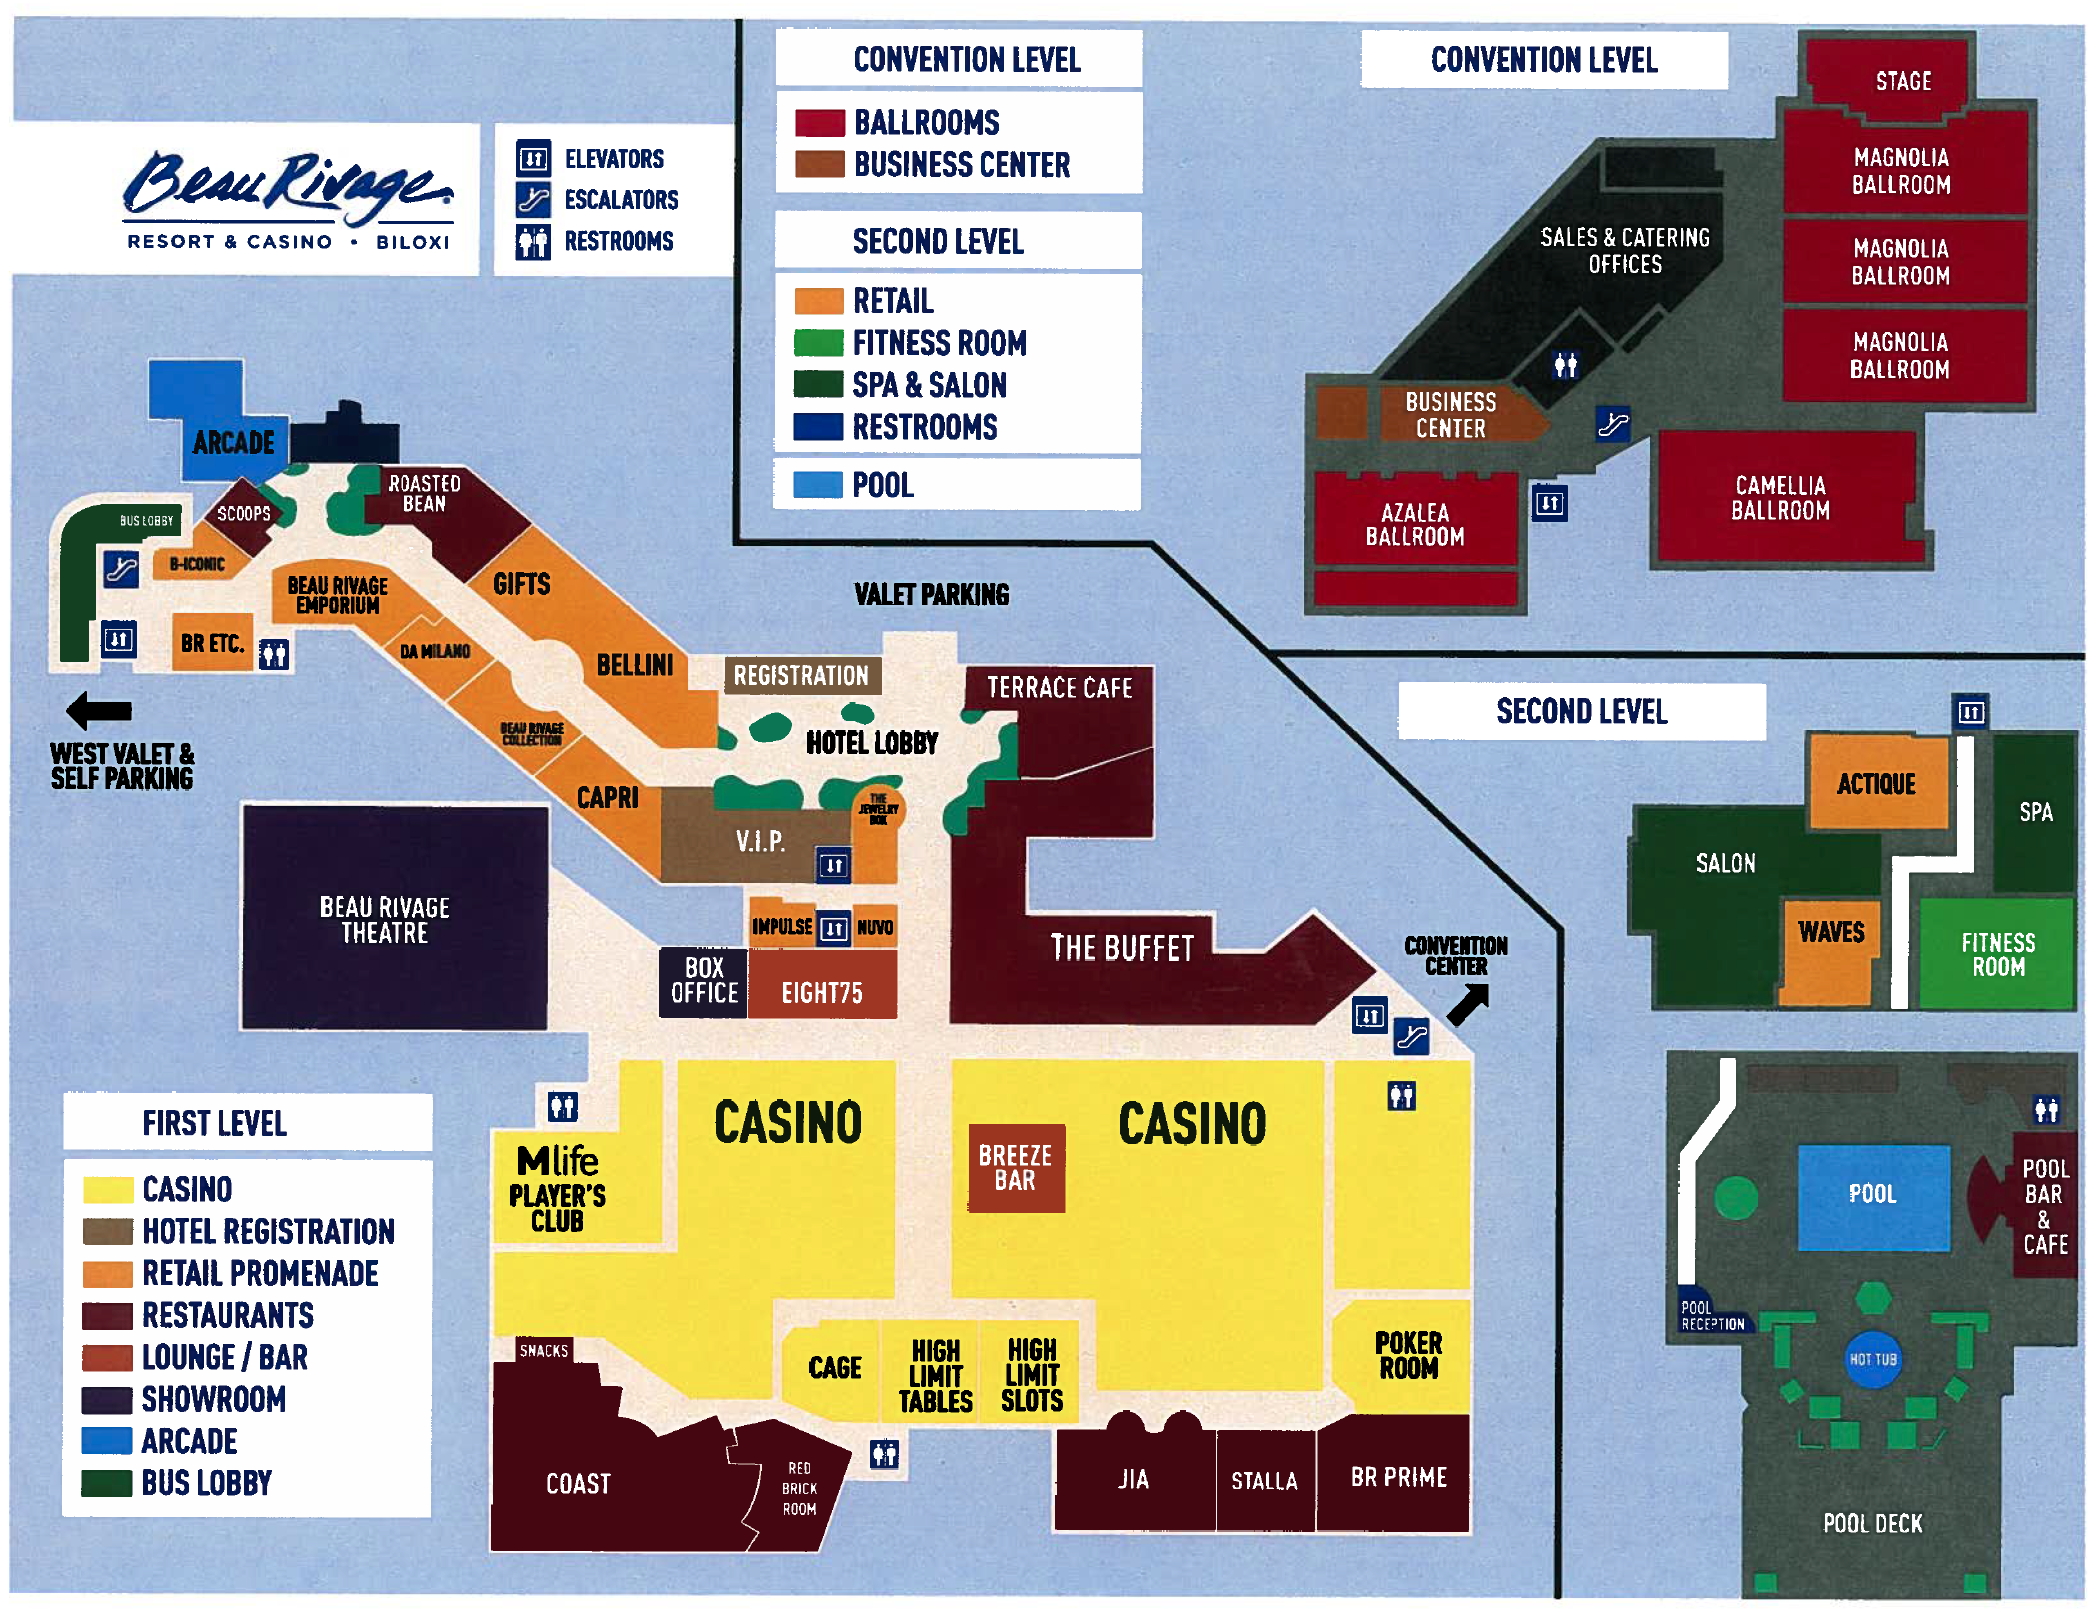 Resort site map of the Beau Rivage